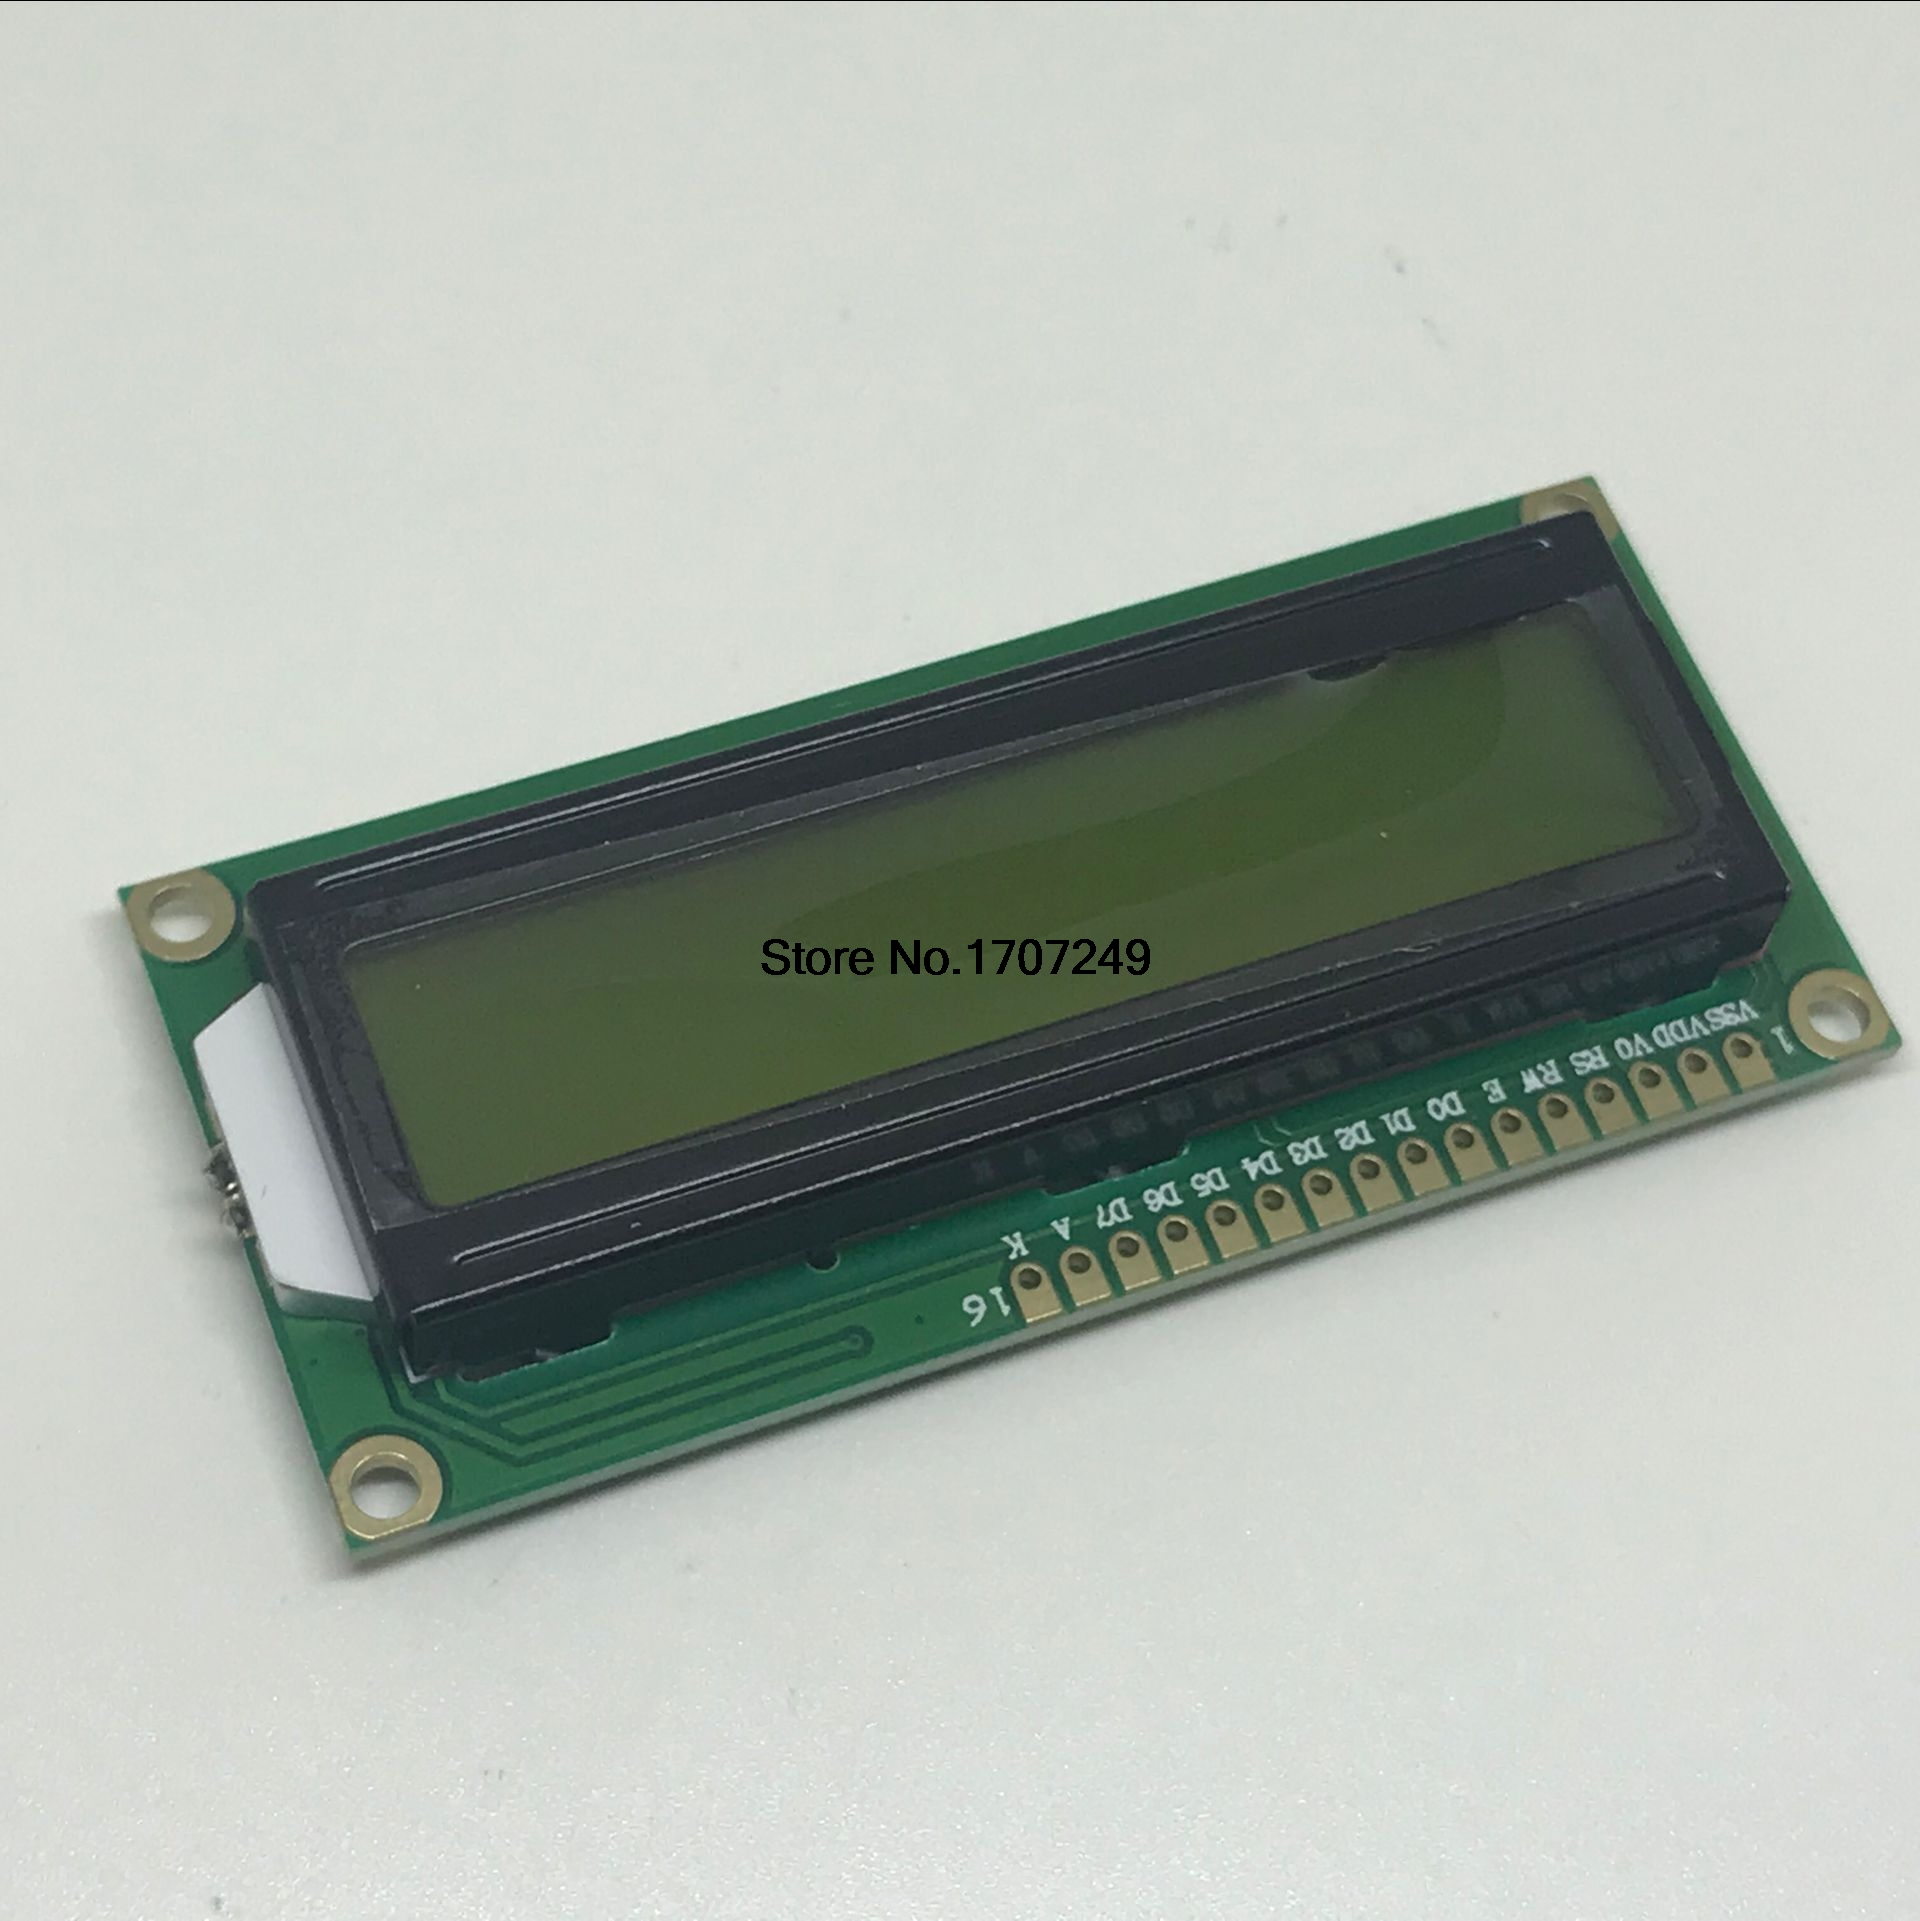 1602 Yellow-Green backlight 5V 16*2 LCD Module Display 1602A